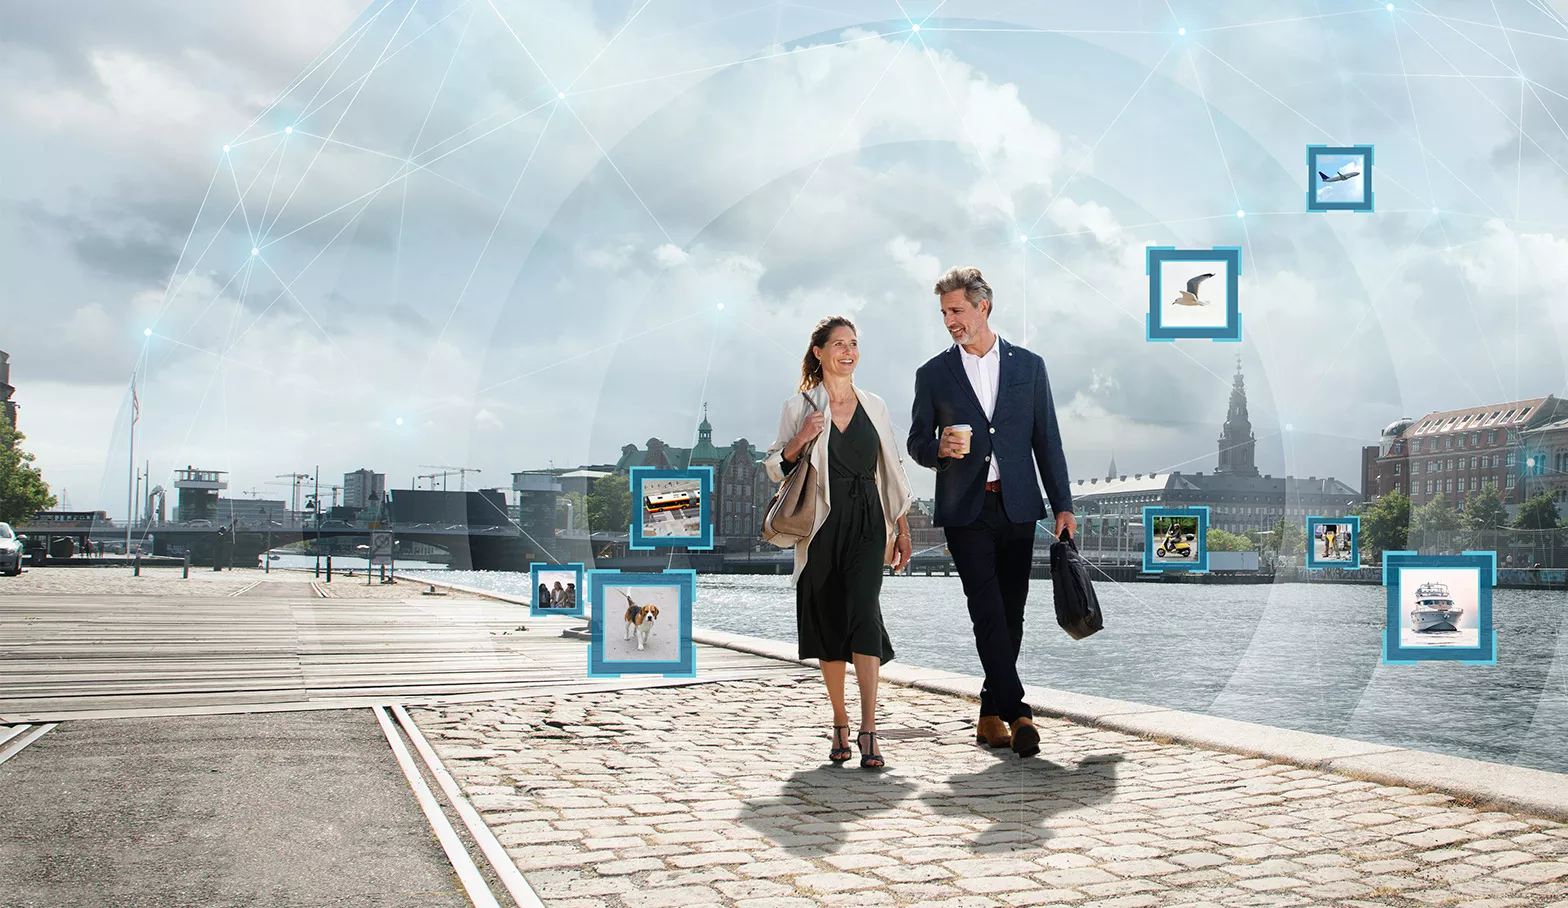 Oticon technology demonstrated with a couple walking through a city